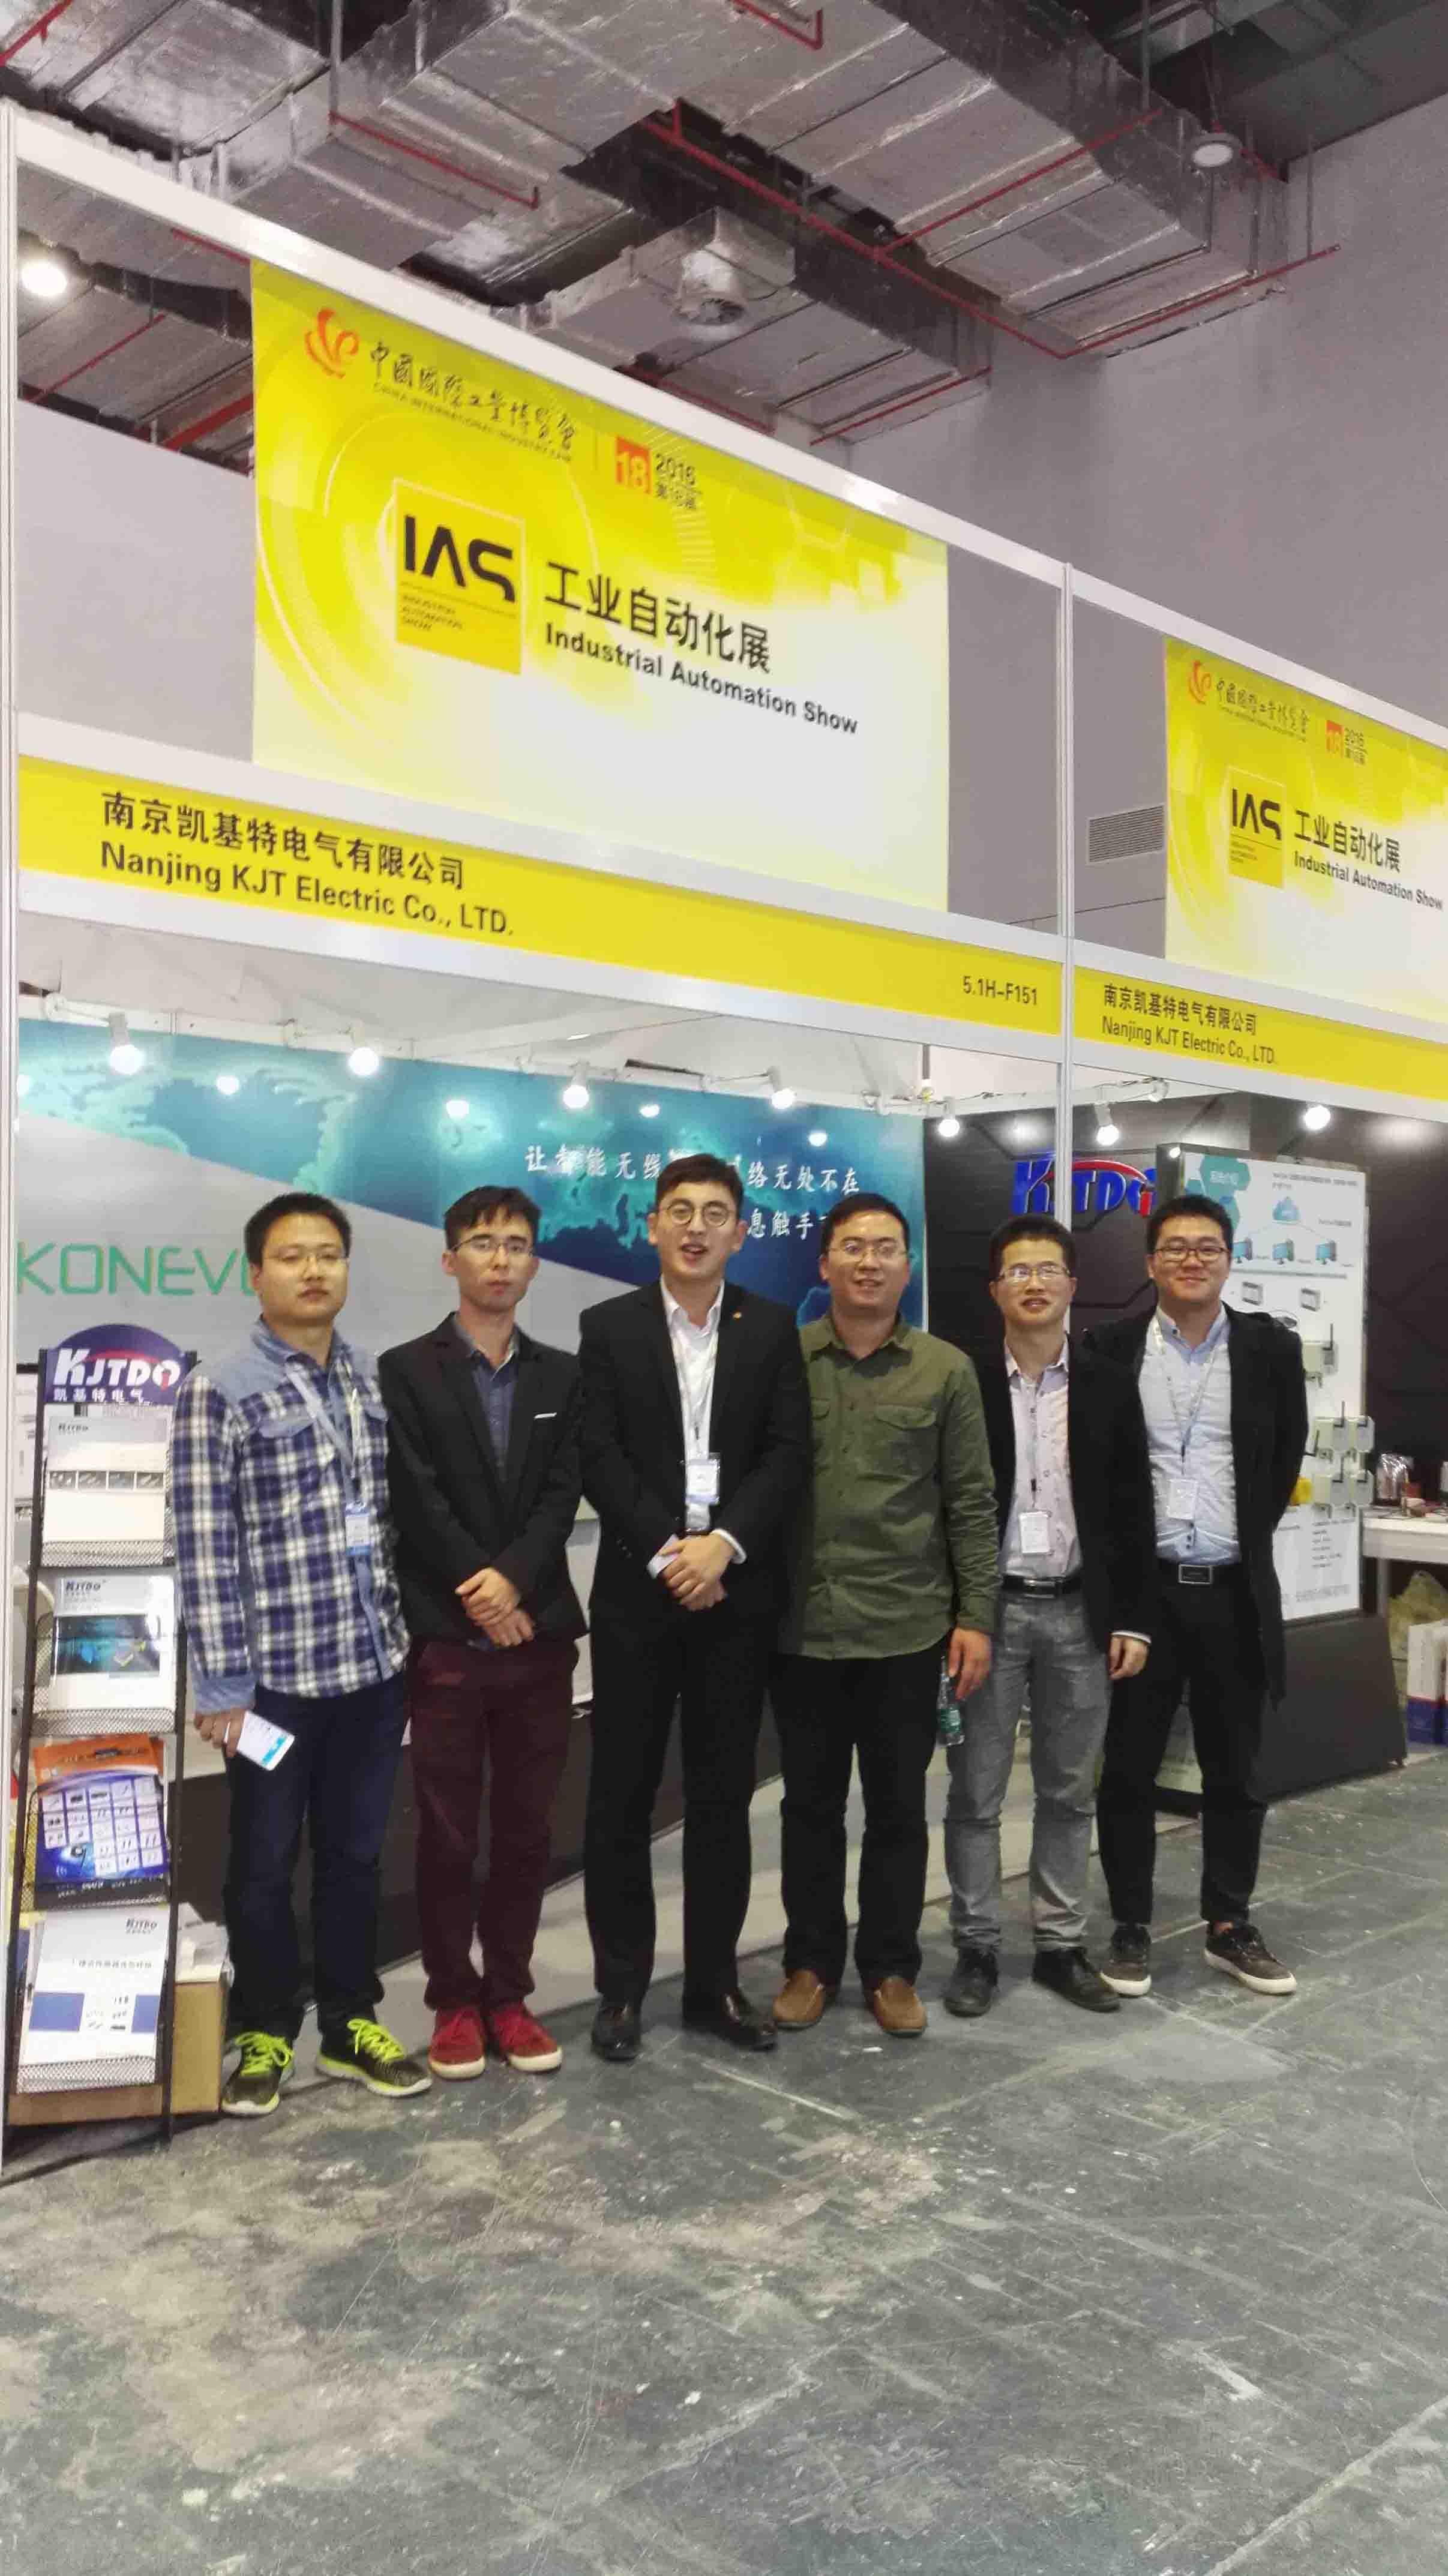 2016 18th Automation Industry Show